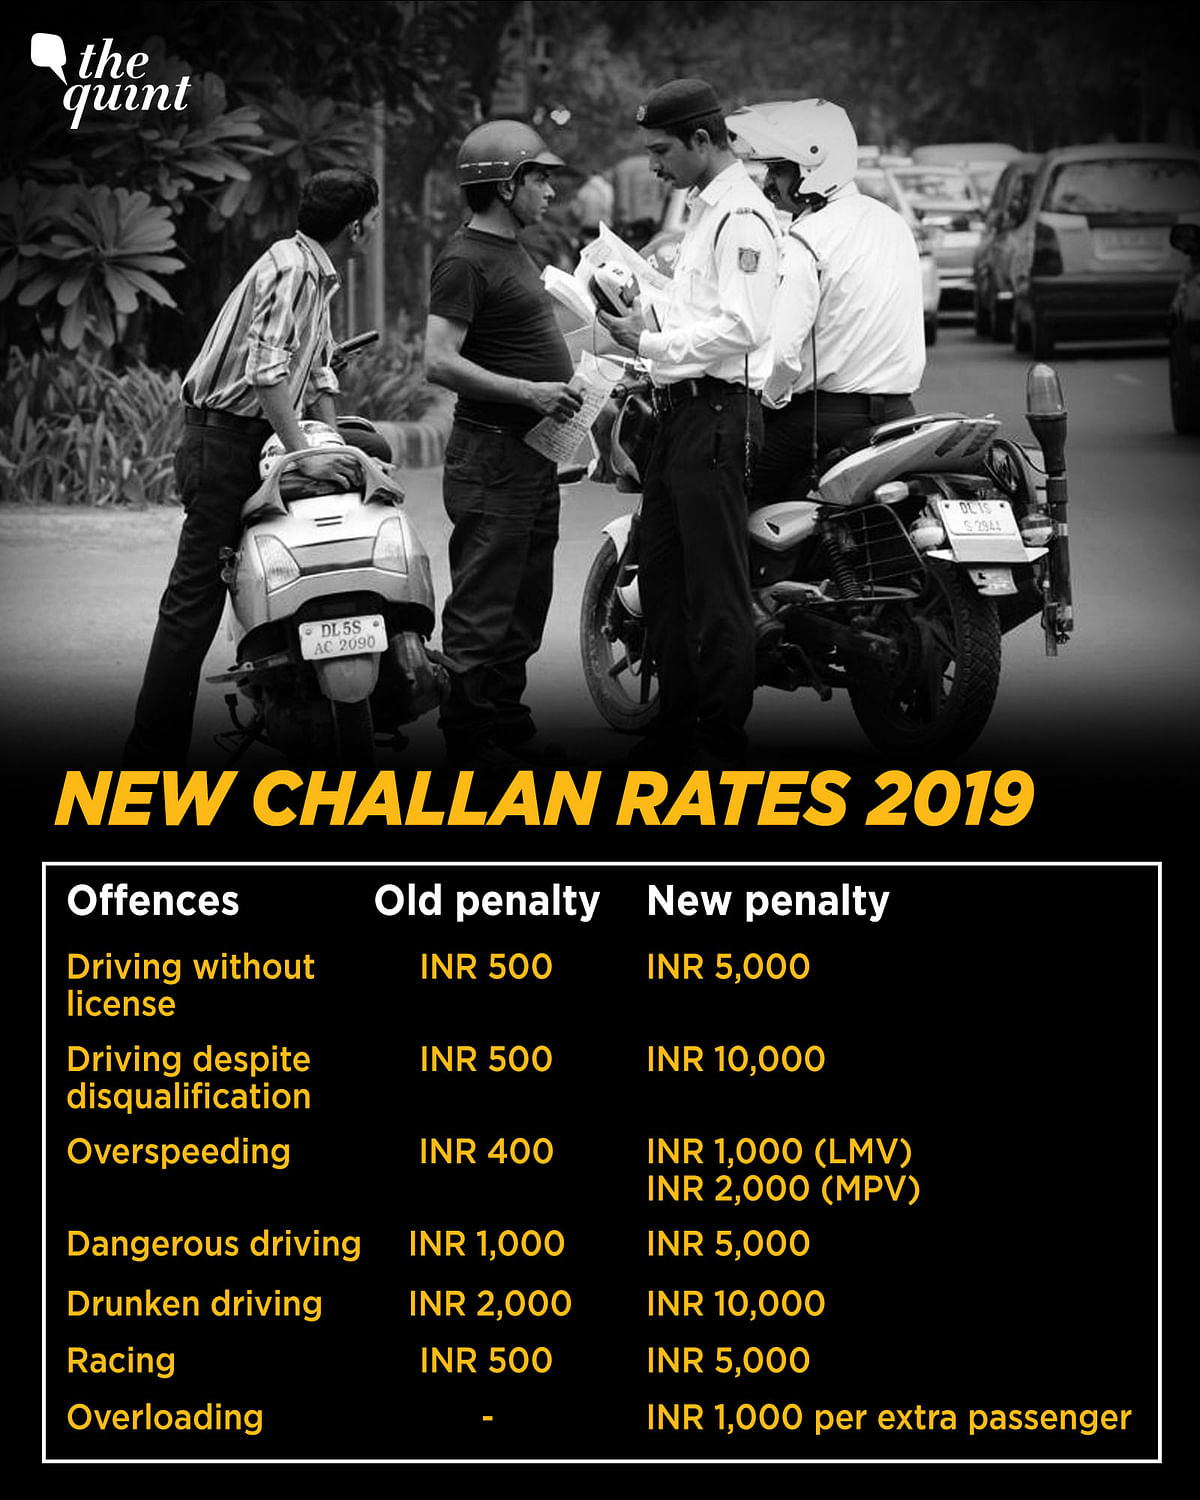 New Challan Rates 2019.